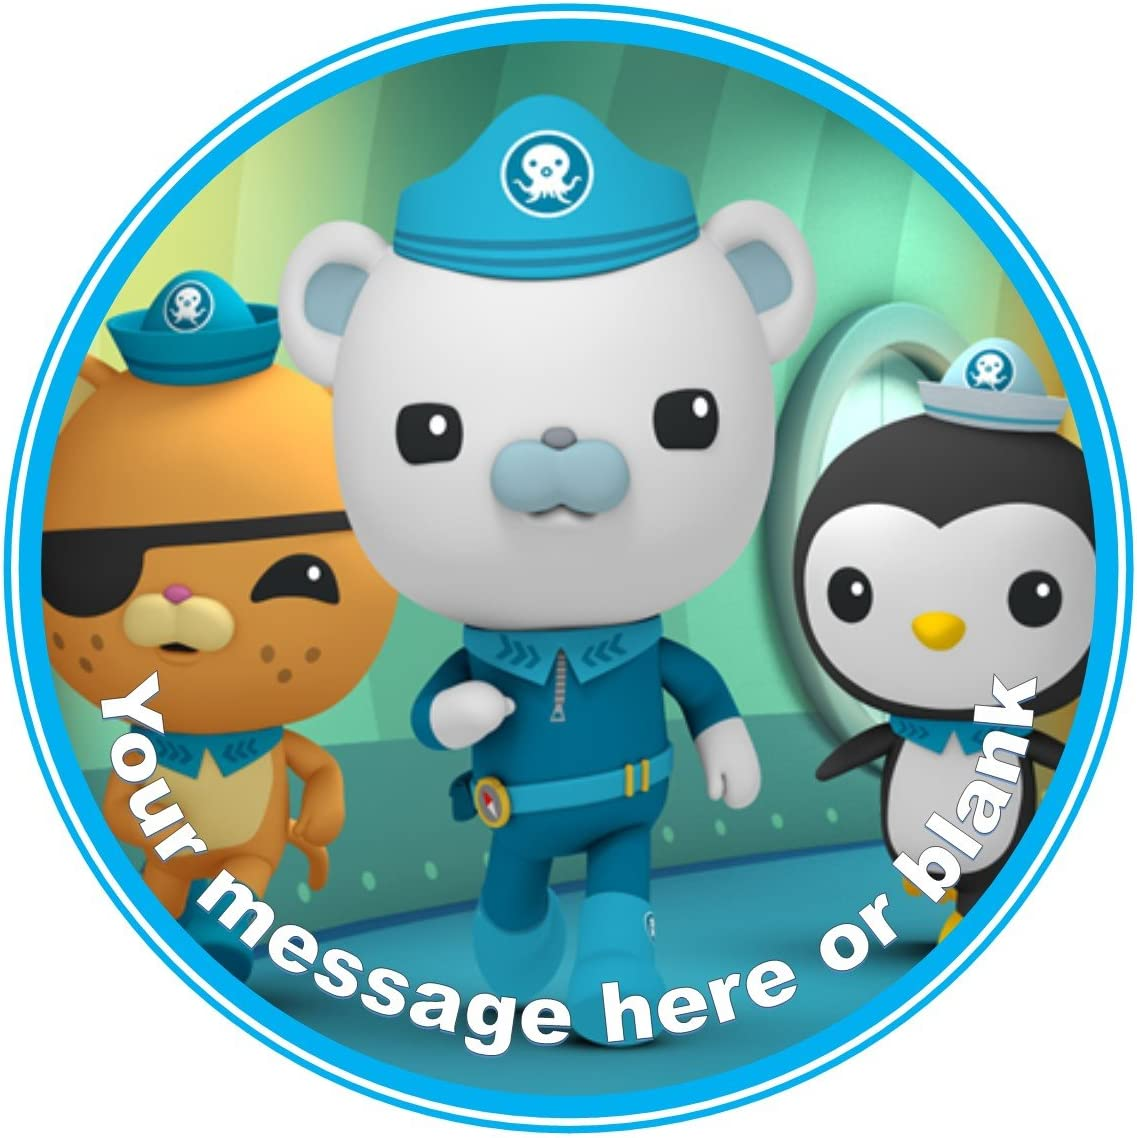 Admirable Nd1 The Octonauts Birthday Personalised Round Cake Topper Approx Funny Birthday Cards Online Necthendildamsfinfo